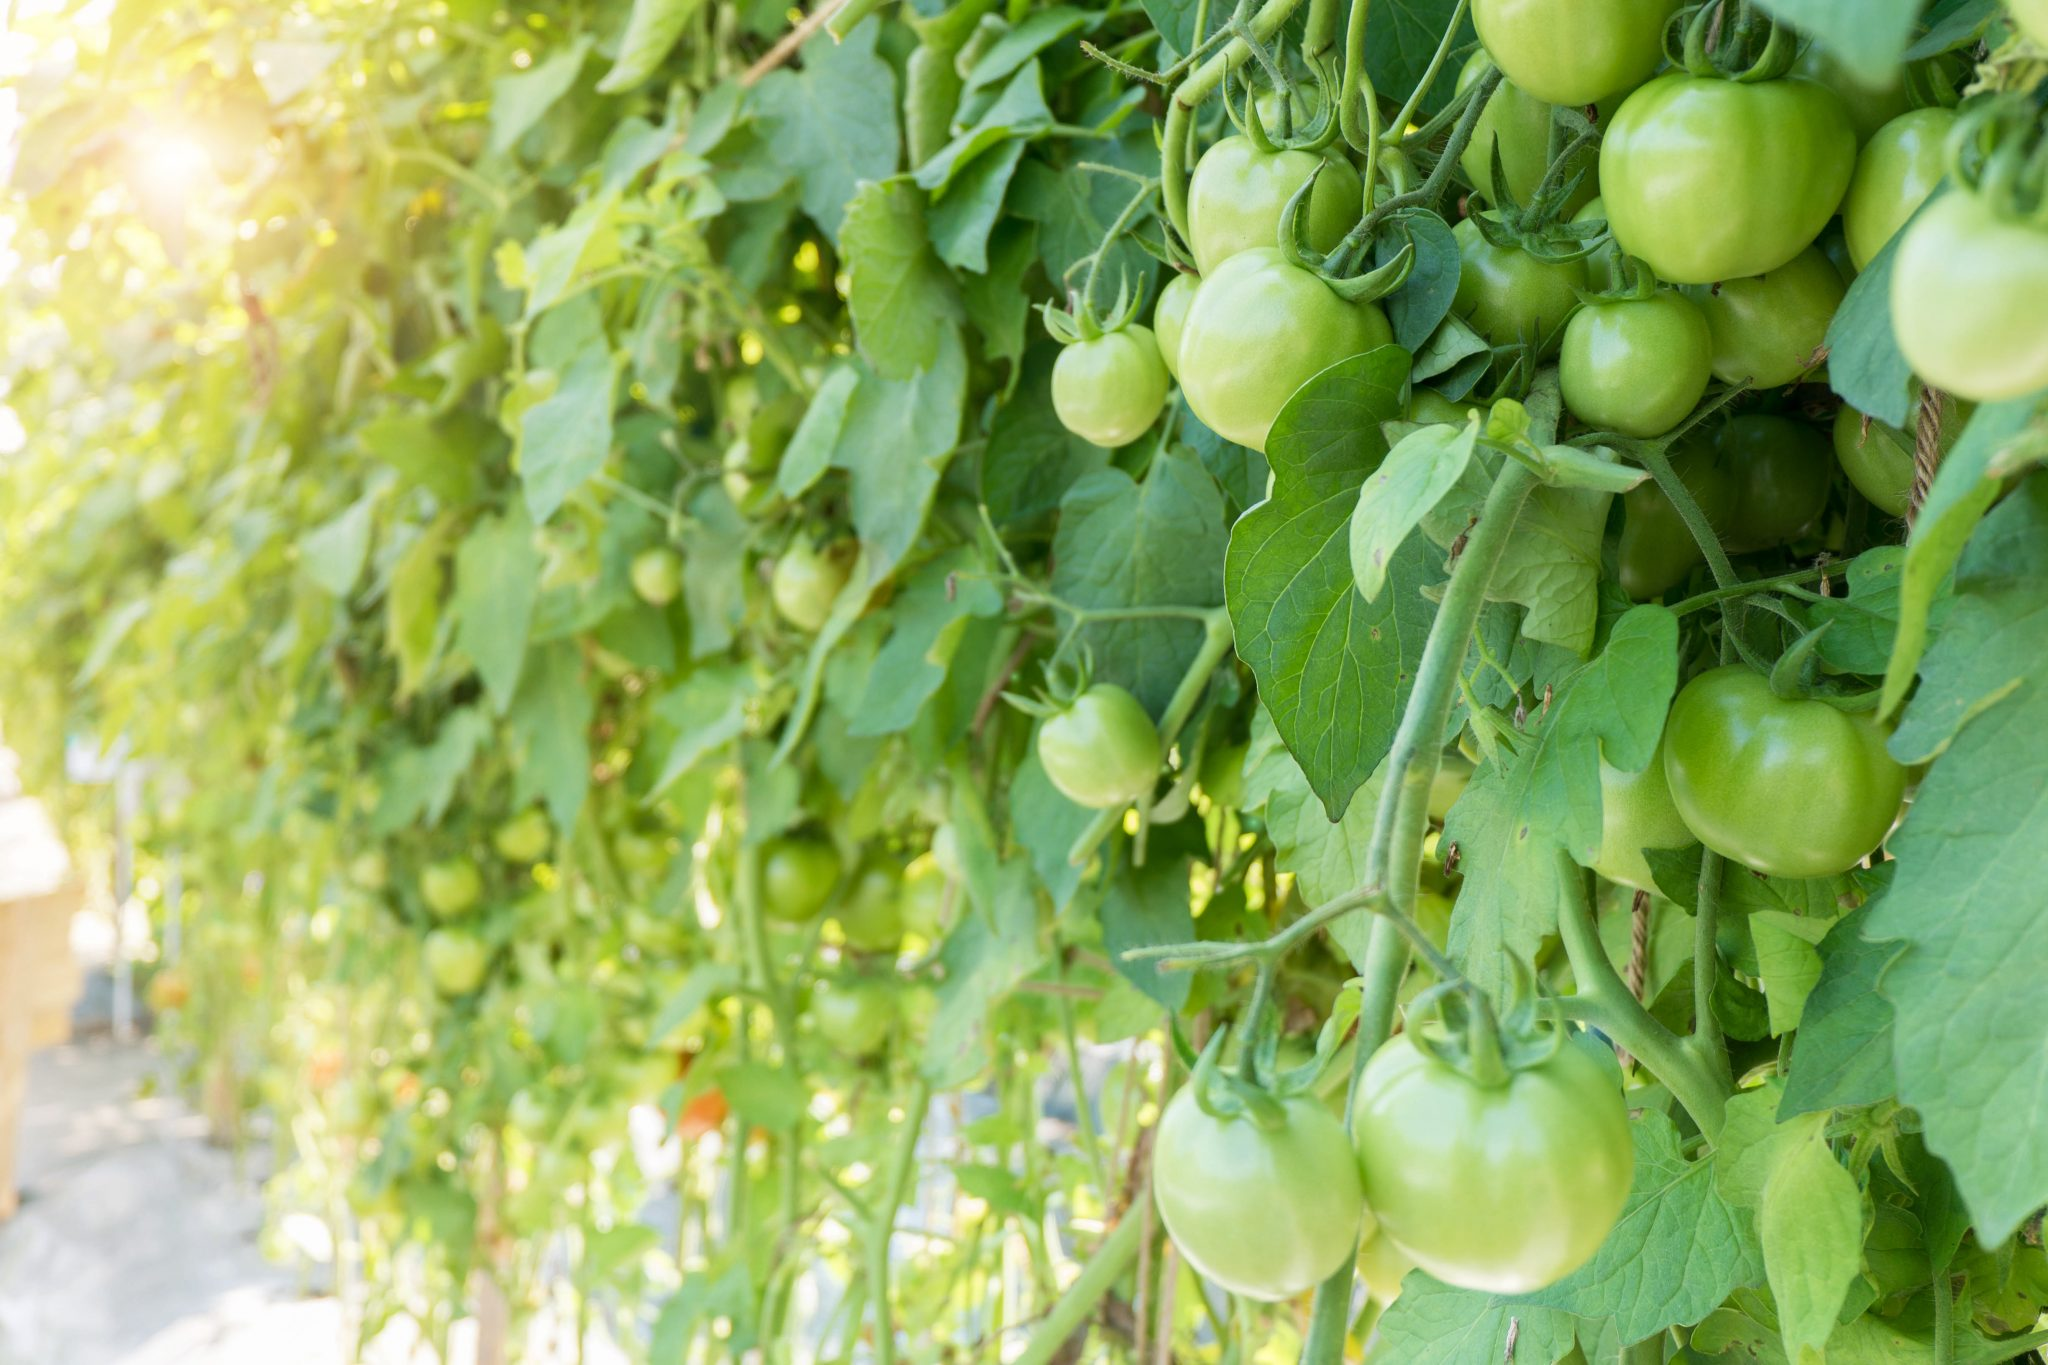 commercial tomato production